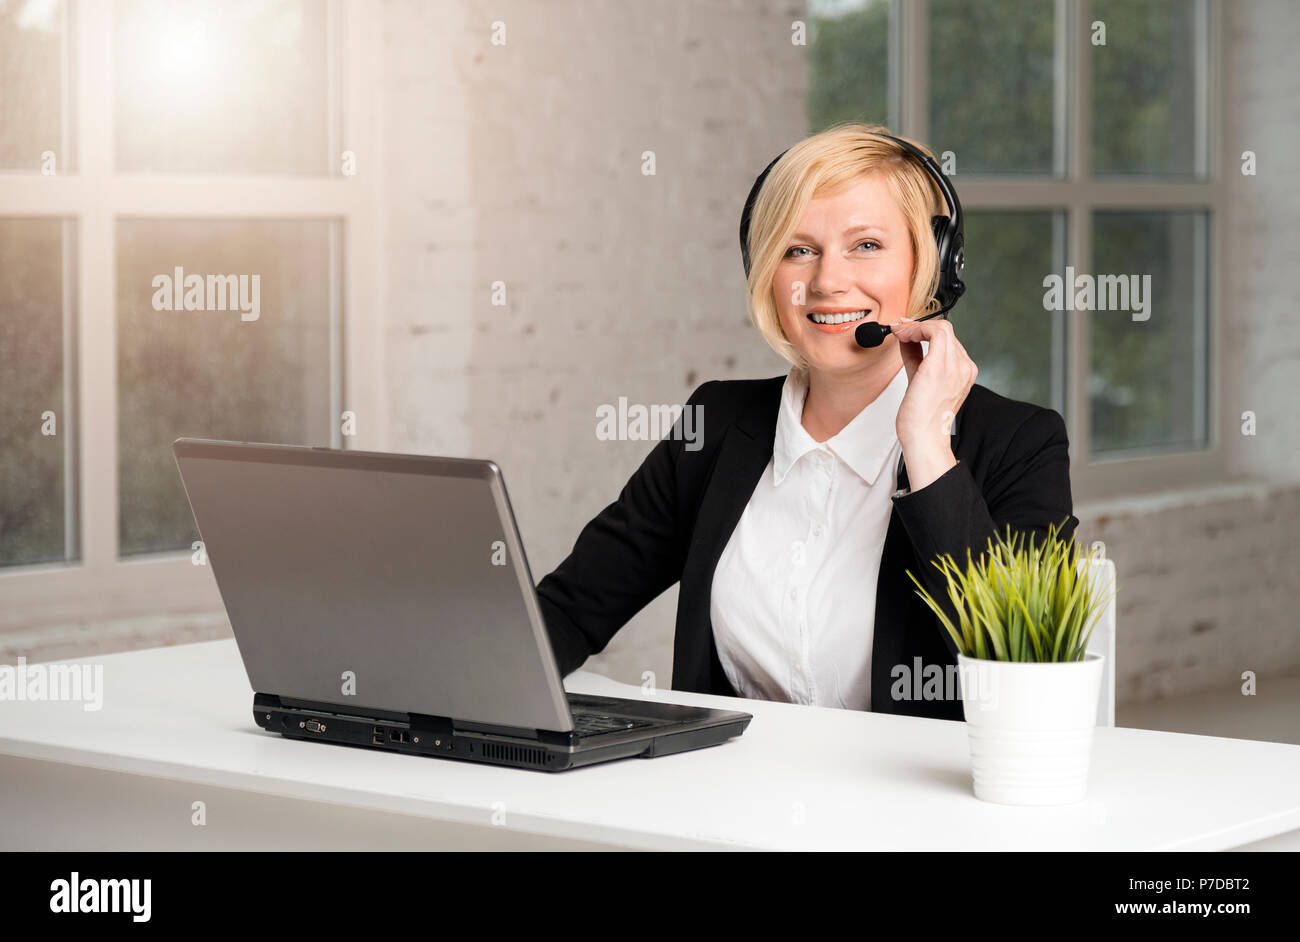 Call center operator, blonde woman dressed in black jacket and white shirt working on laptop via headset in white office Stock Photo